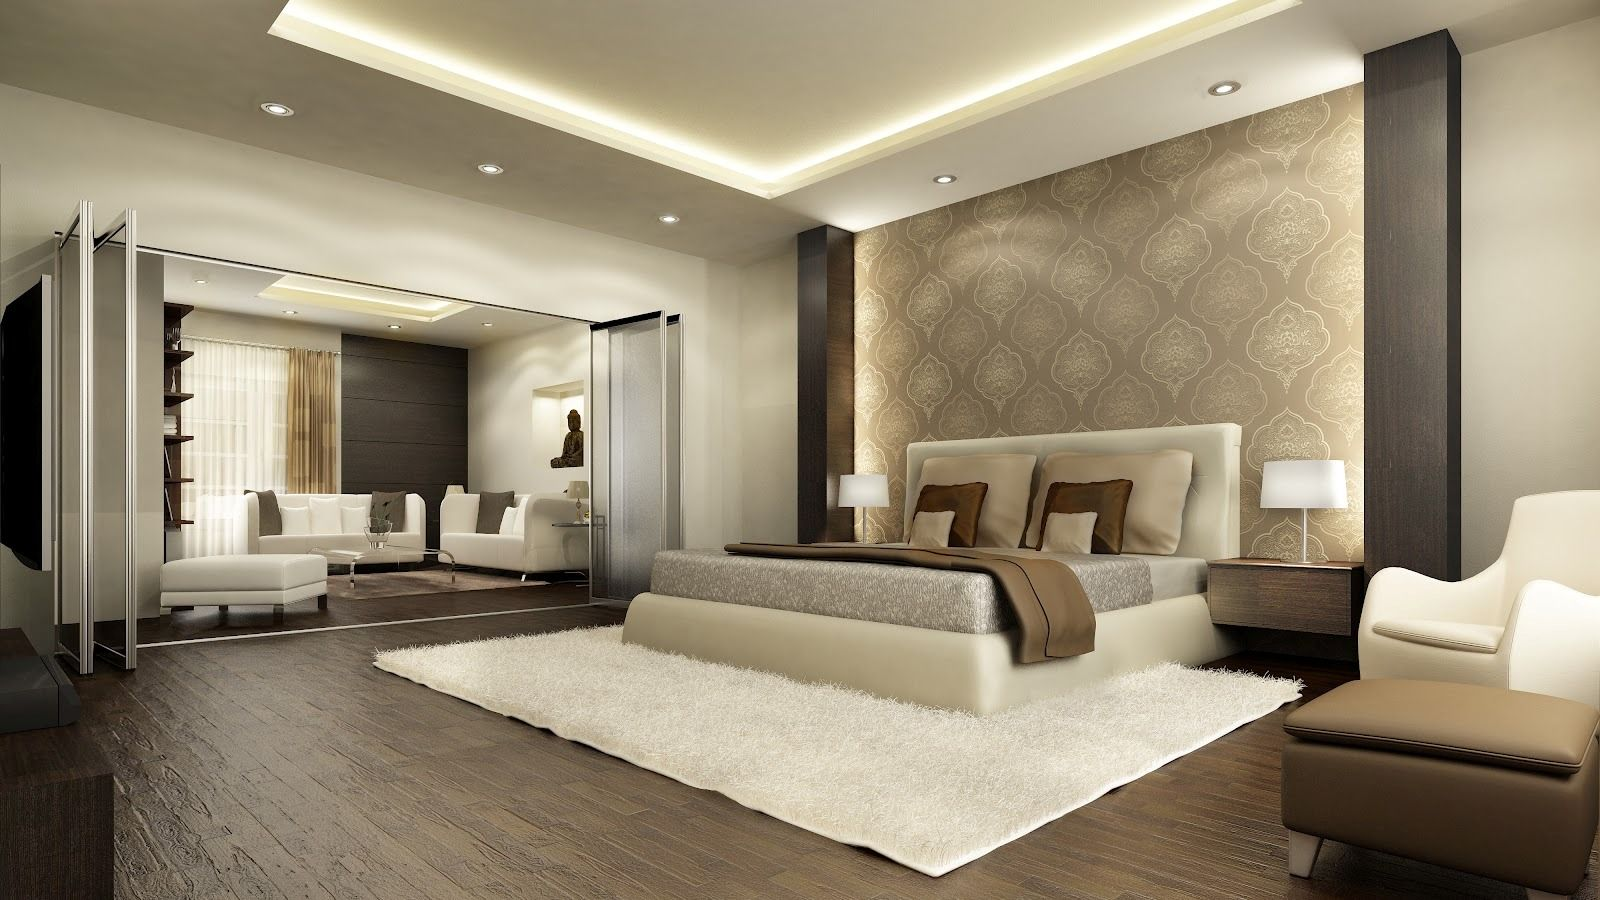 Modern Master Suite modern master bedroom design ideas with luxury lamps white bed